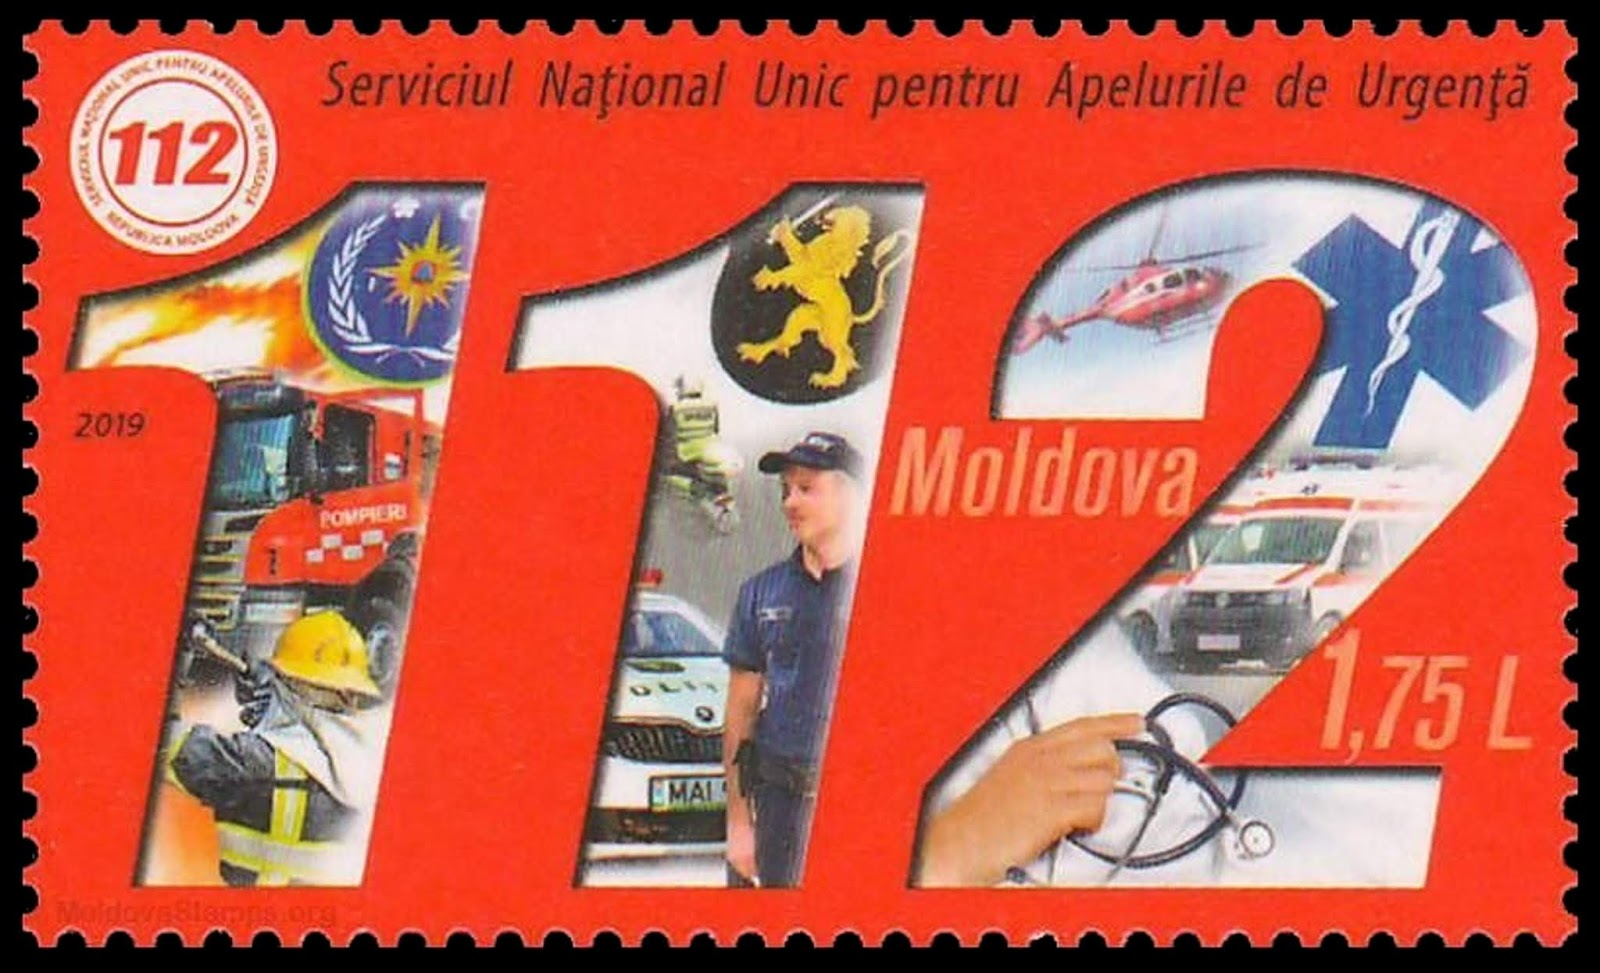 Moldova - National Emergency Service (January 3, 2019)